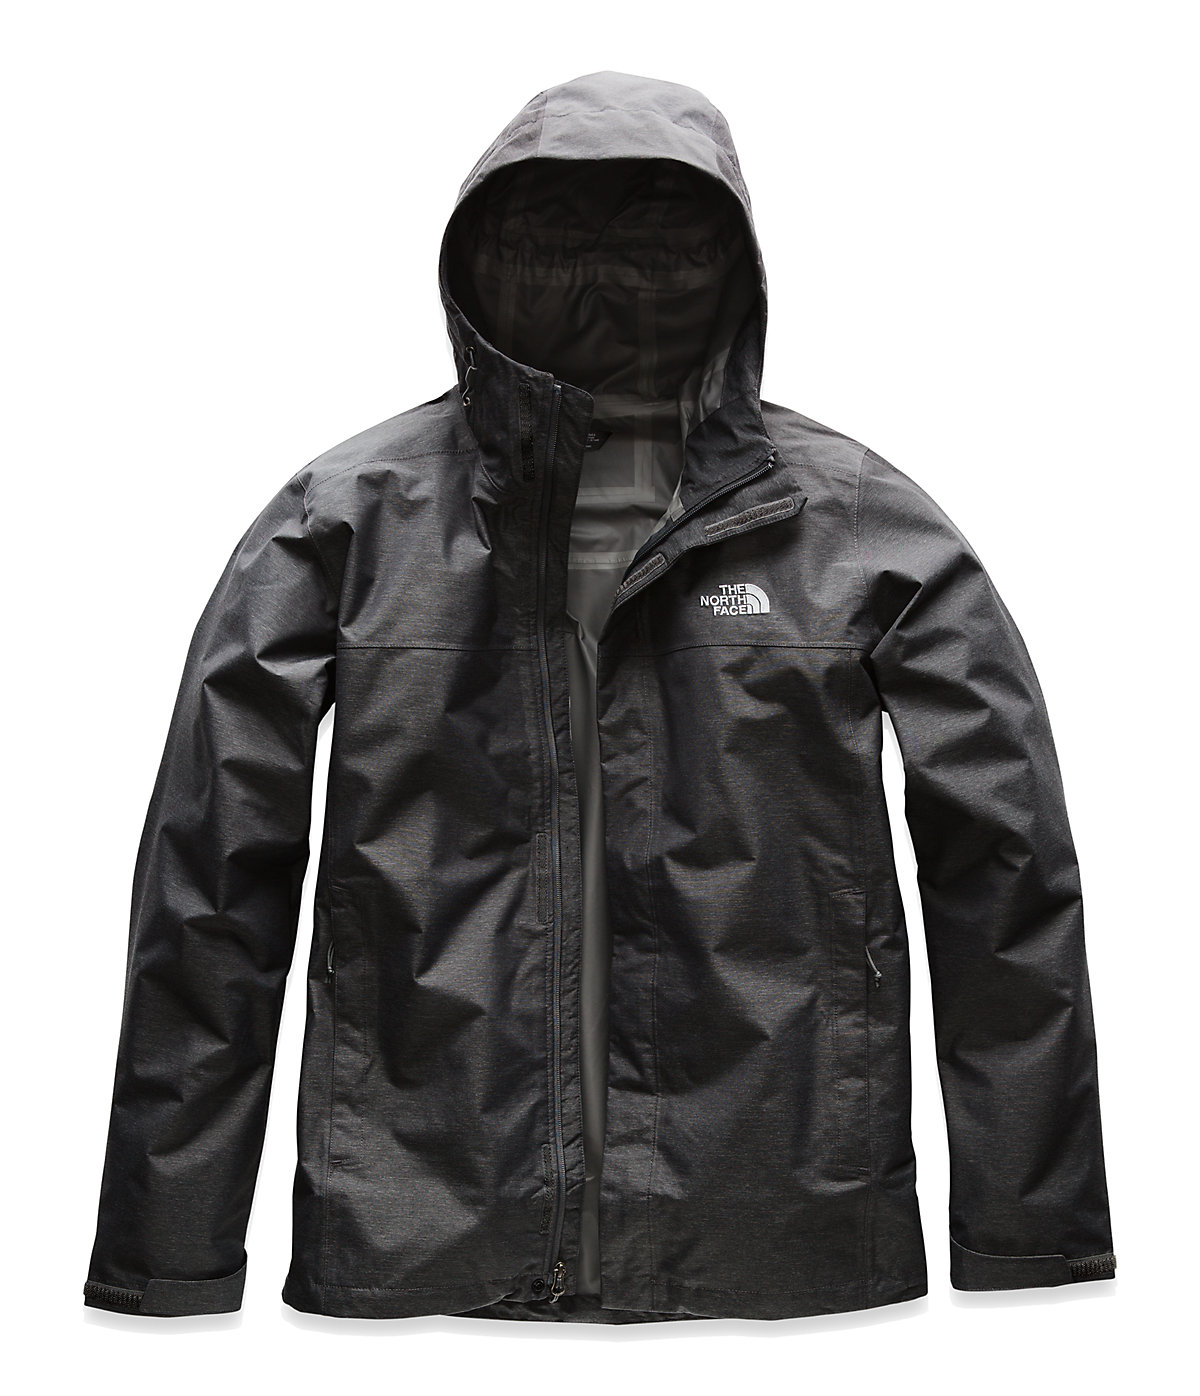 Men S Venture 2 Jacket Tall The North Face Mens Outfits Mens Jackets Breathable Jacket [ 1396 x 1200 Pixel ]